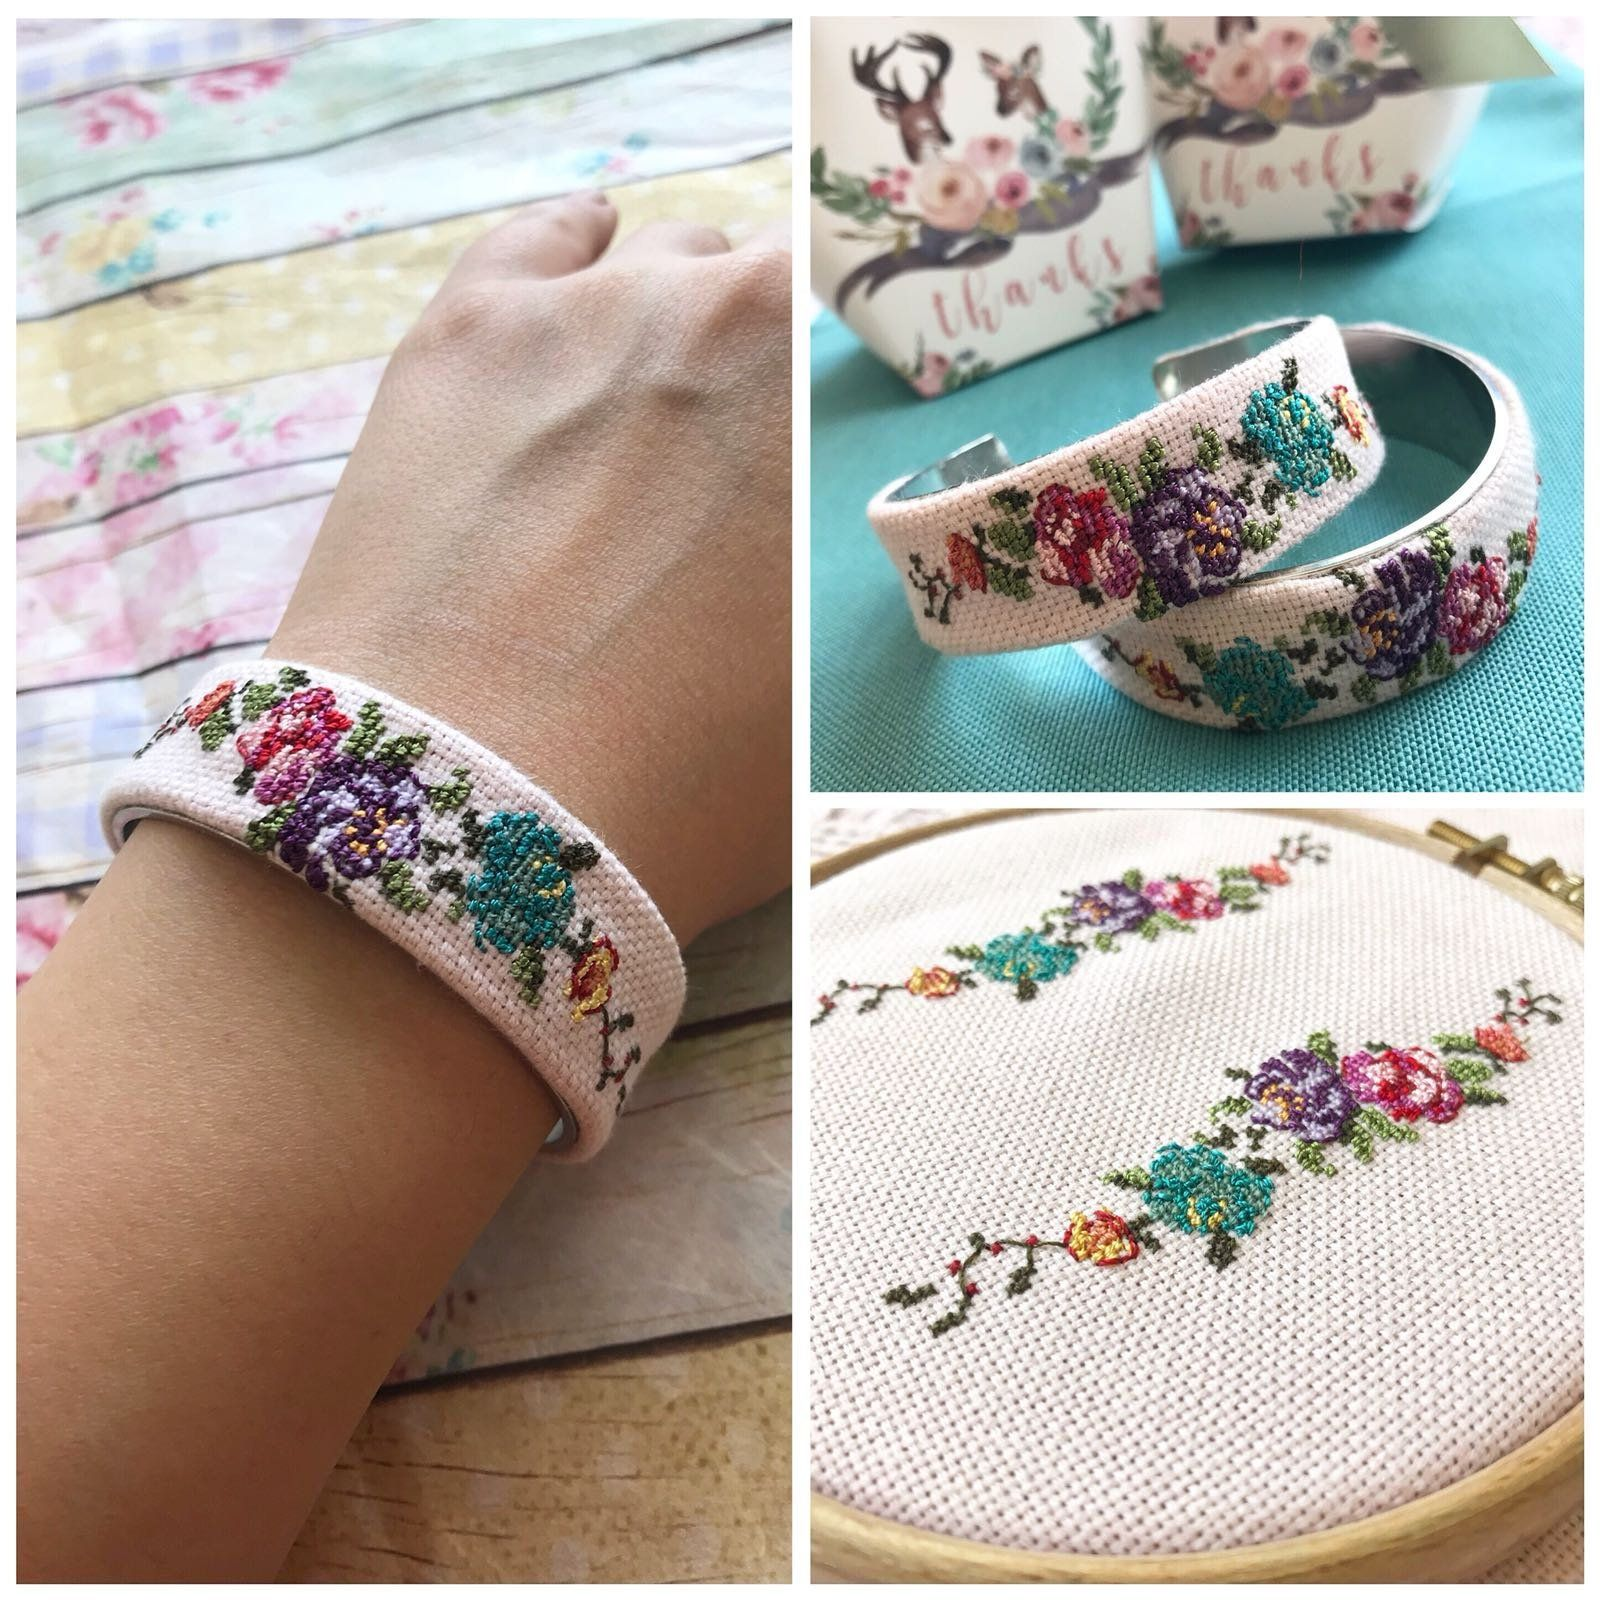 Custom Embroidered Cuff Bracelet Cross Sch Bohemian Style Bridesmaid Gifts Fl Bangle Vintage Embroidery Jewelry Bridal Gift By